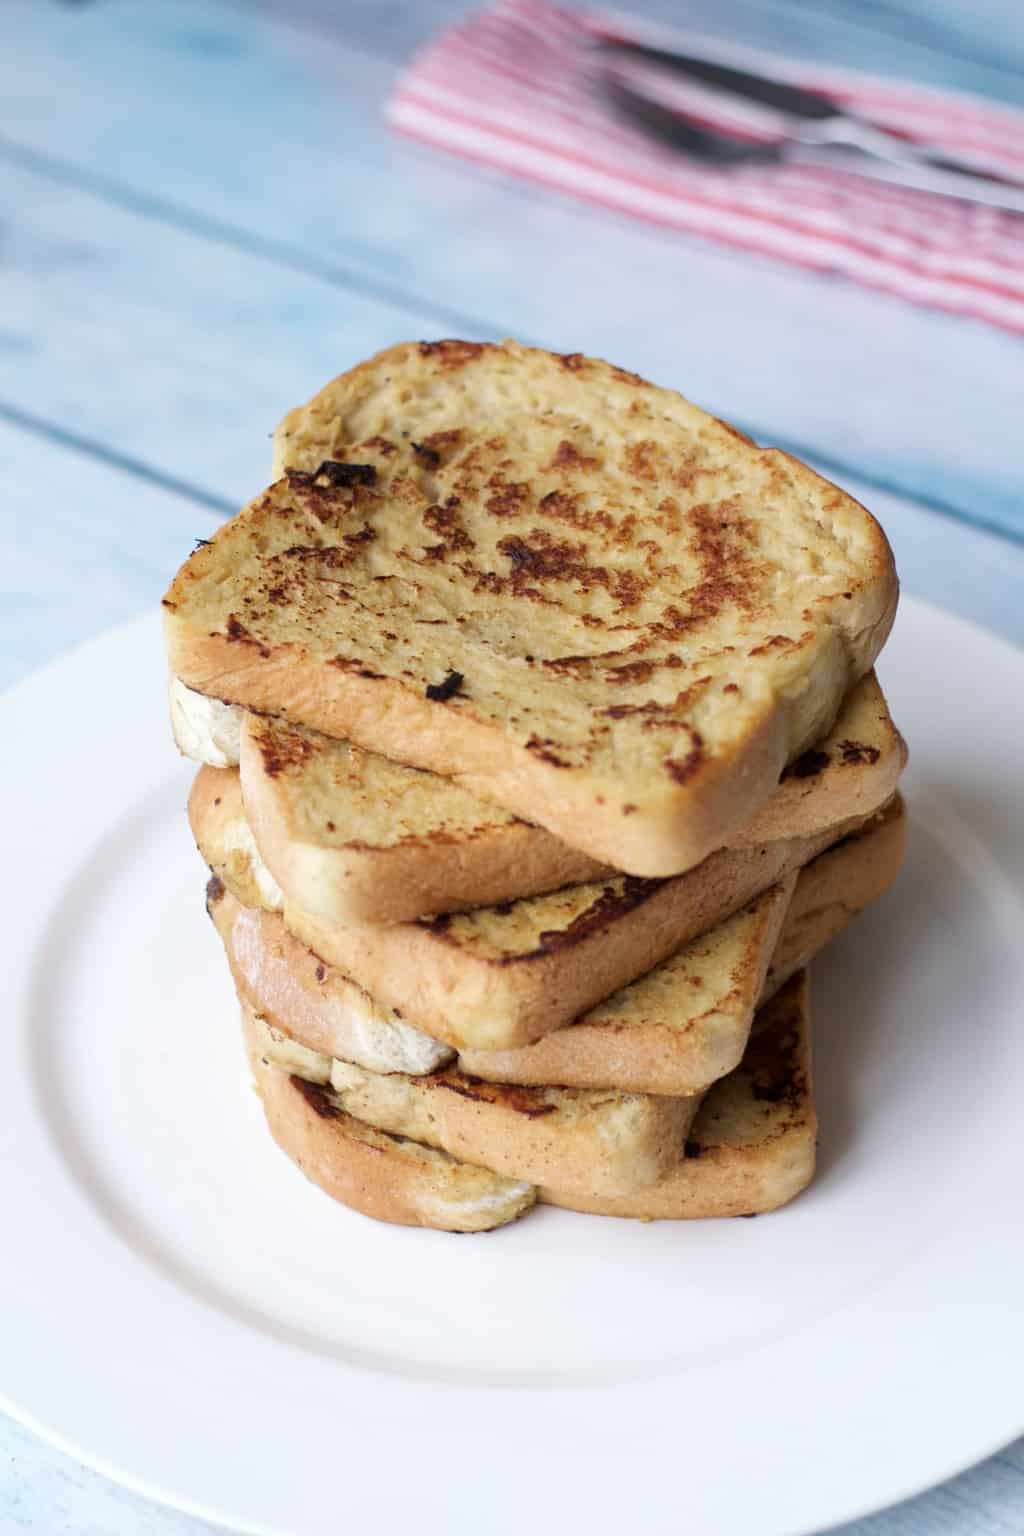 Quick and easy vegan french toast loving it vegan quick and easy vegan french toast vegan lovingitvegan breakfast dairyfree ccuart Gallery